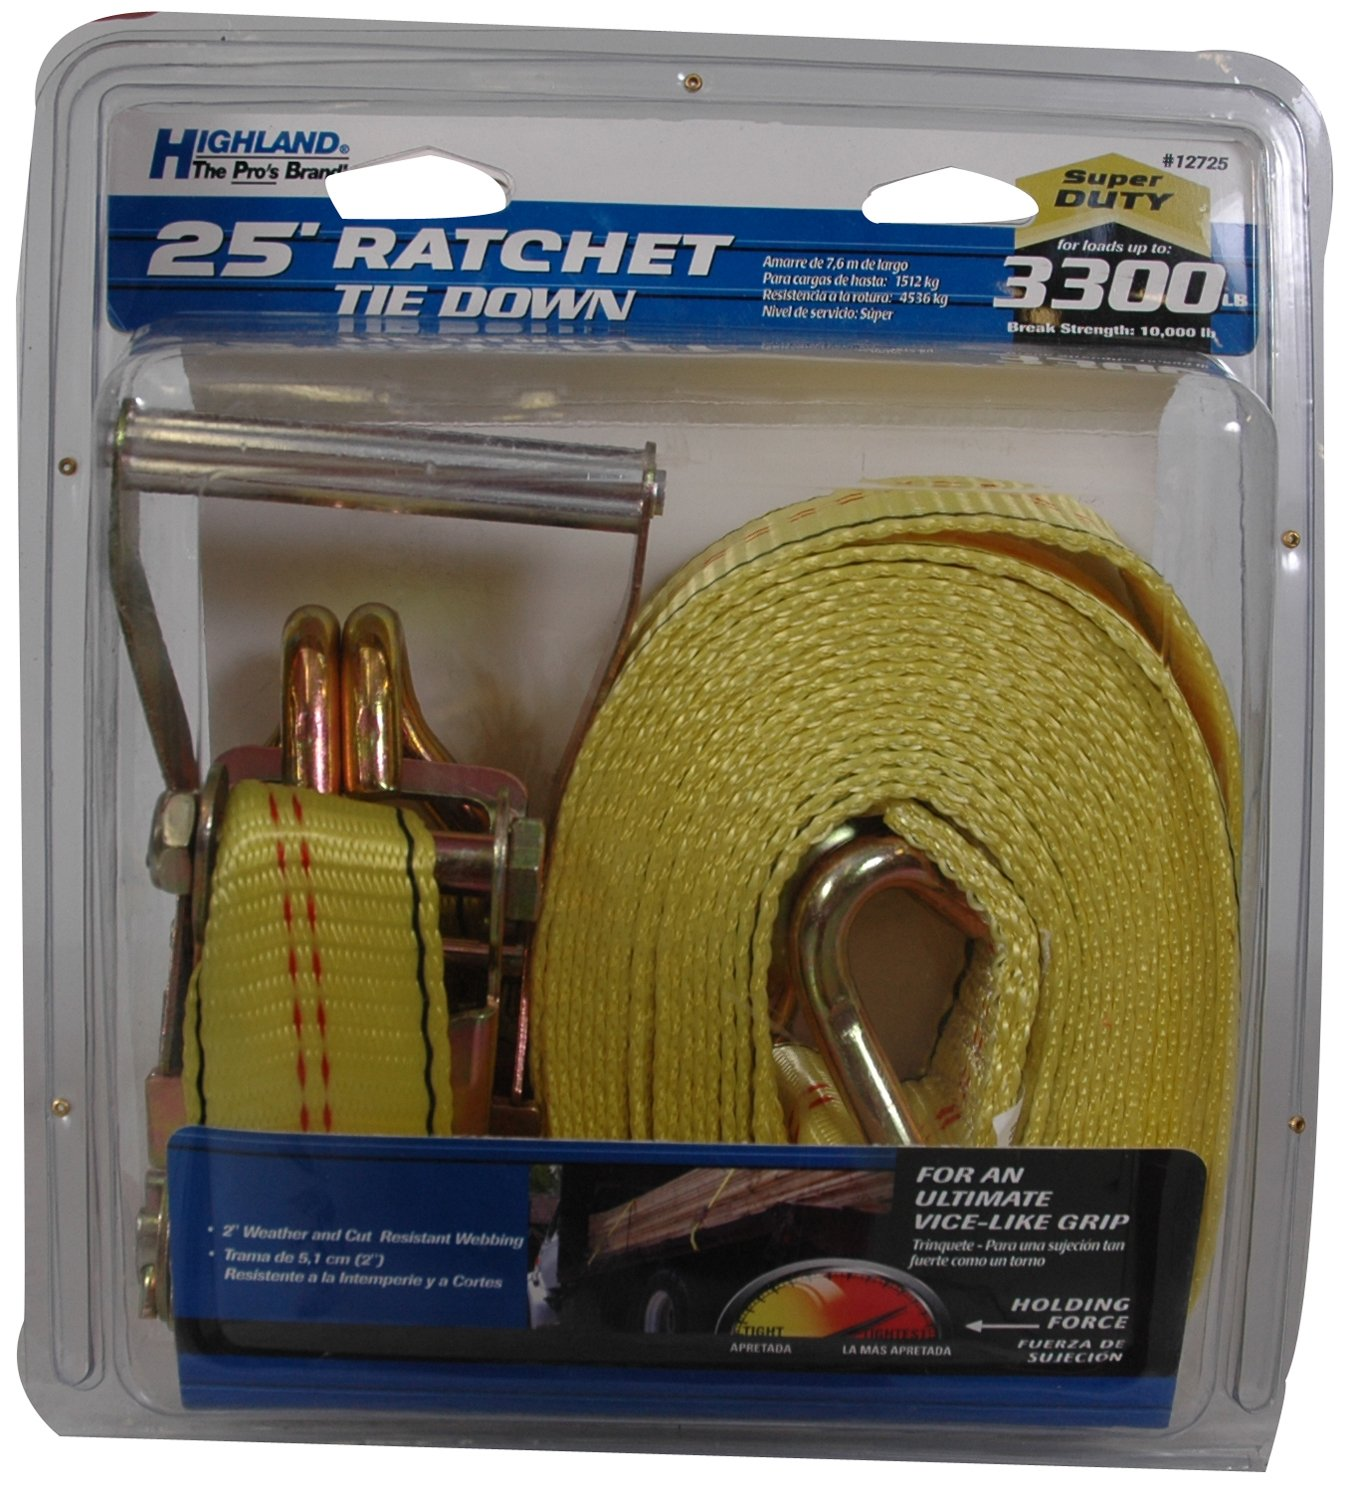 1272500 1 piece Highland 25 Yellow Super Duty Ratchet Tie Down with Double J-Hooks